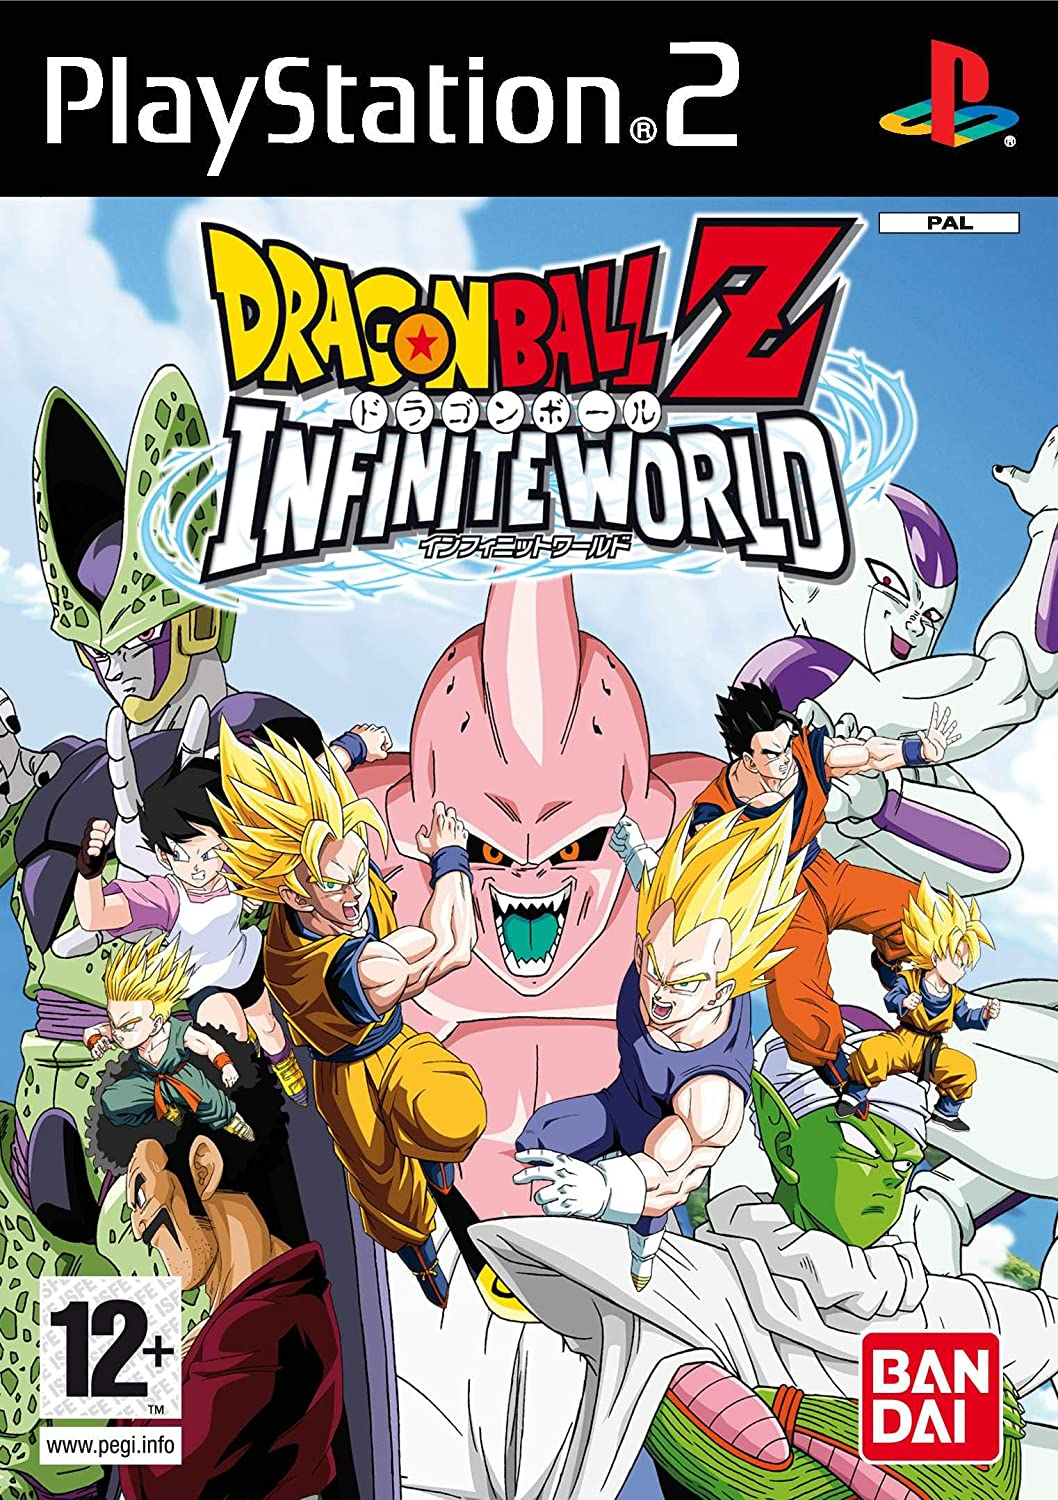 Dragon Ball Z: Infinite World: Amazon.co.uk: PC & Video Games